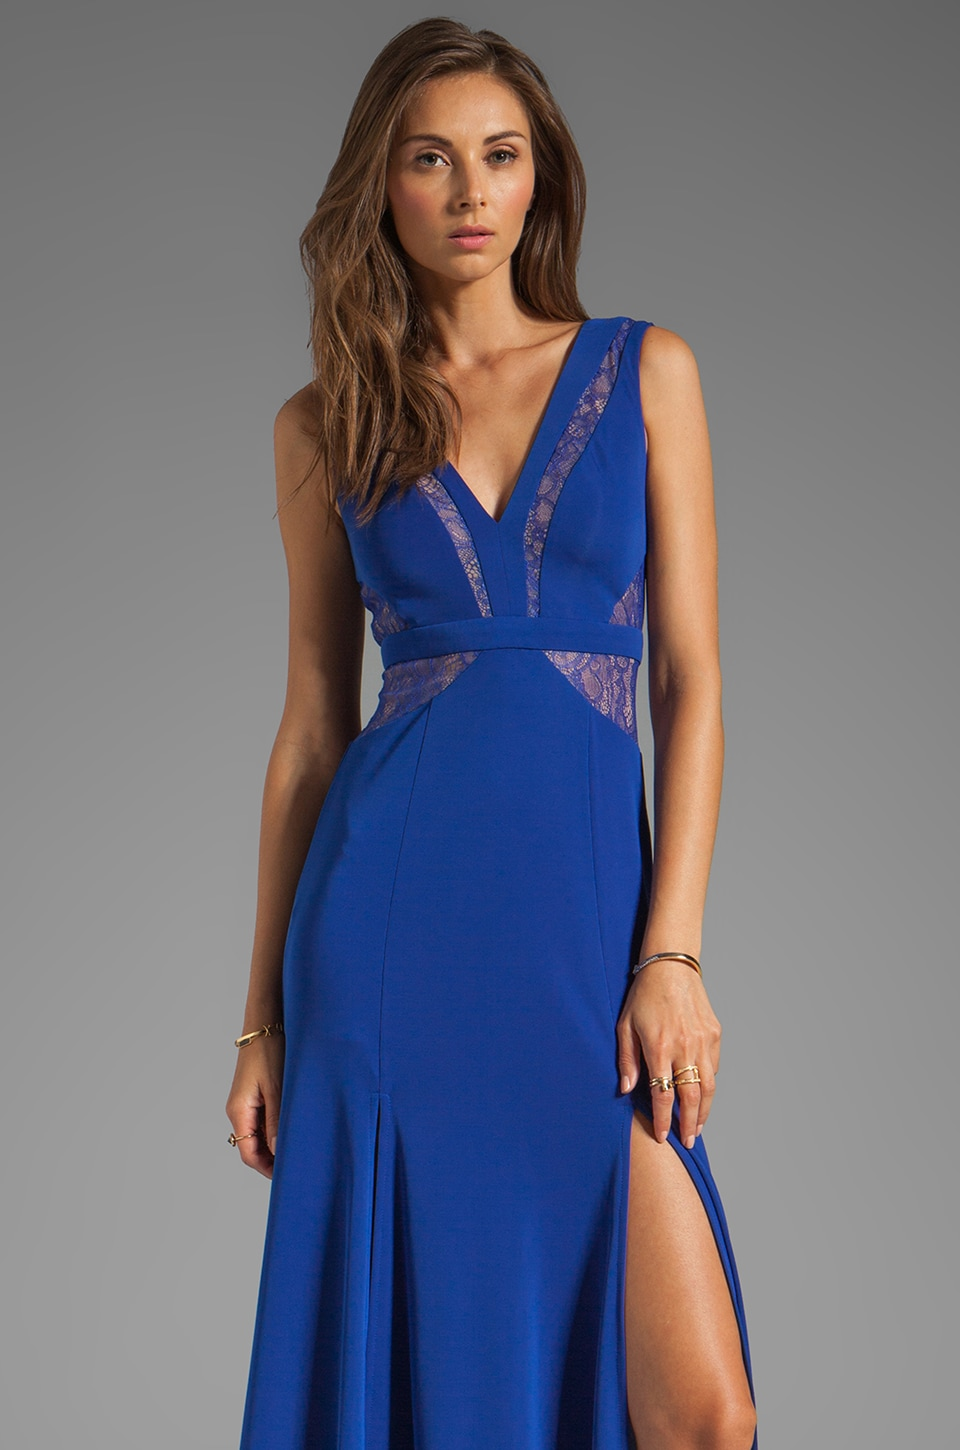 BCBGMAXAZRIA Maxi Gown in Royal Blue